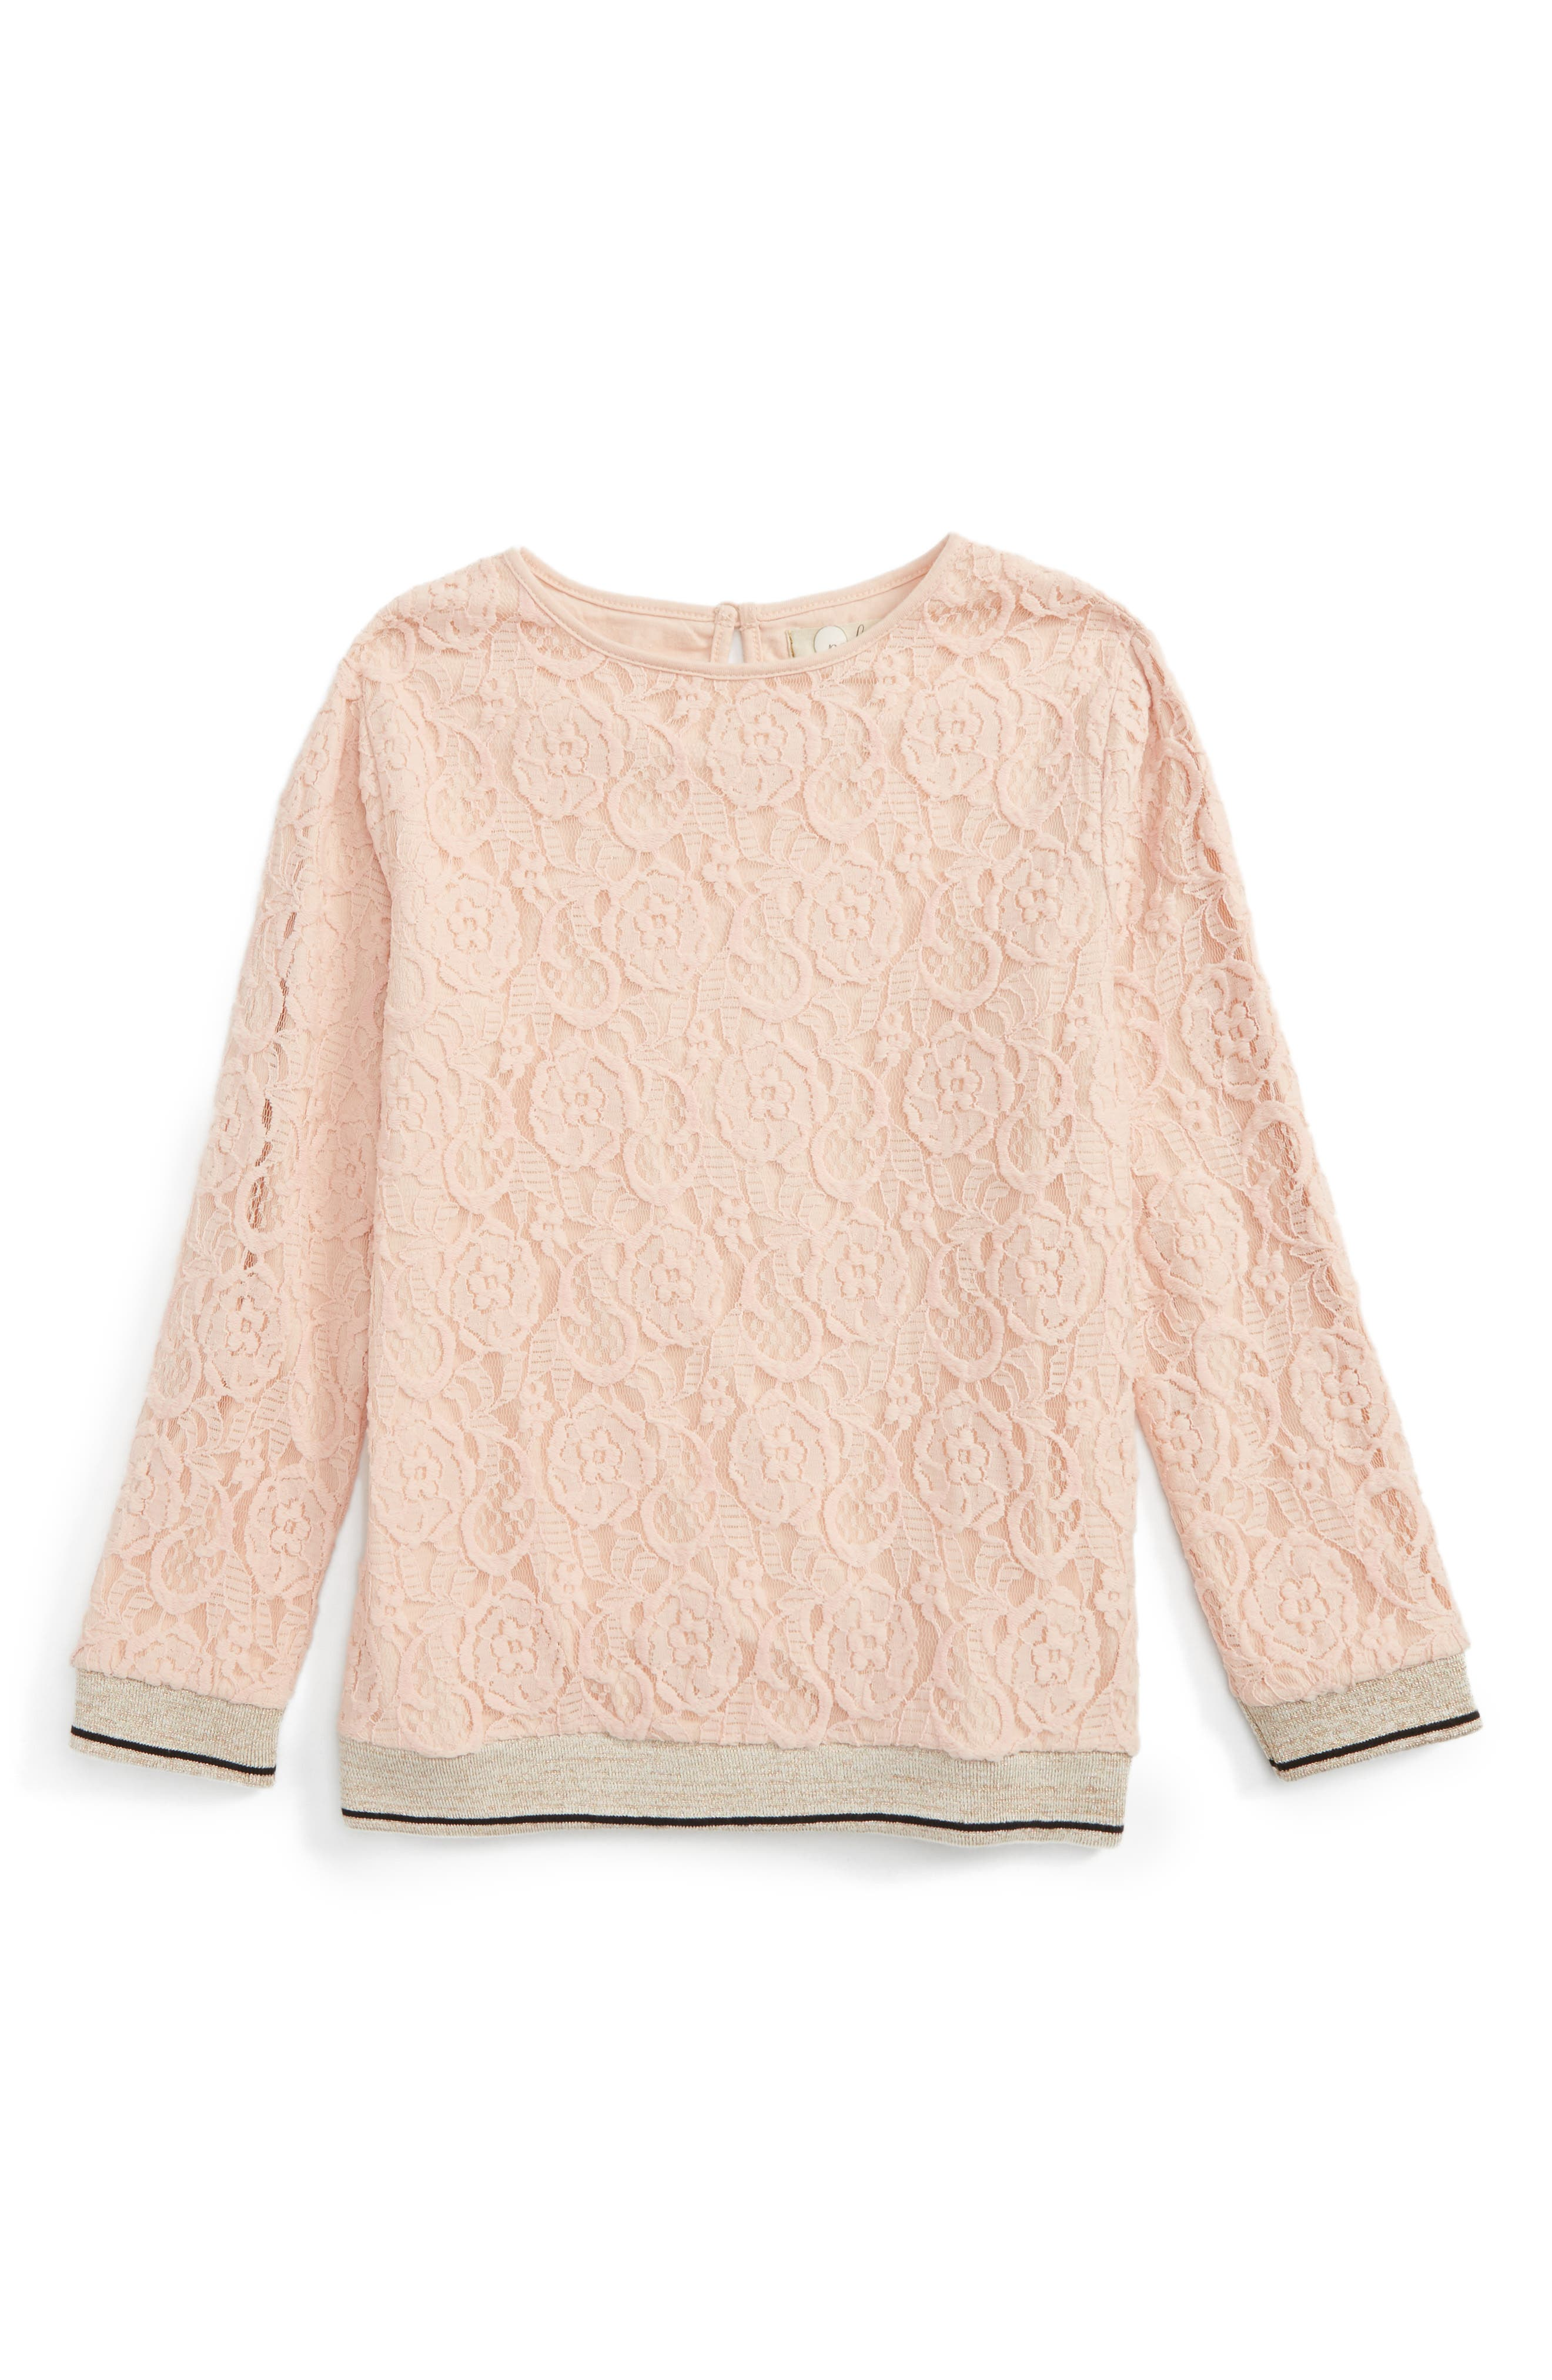 Grace Lace Overlay Top,                             Main thumbnail 1, color,                             650